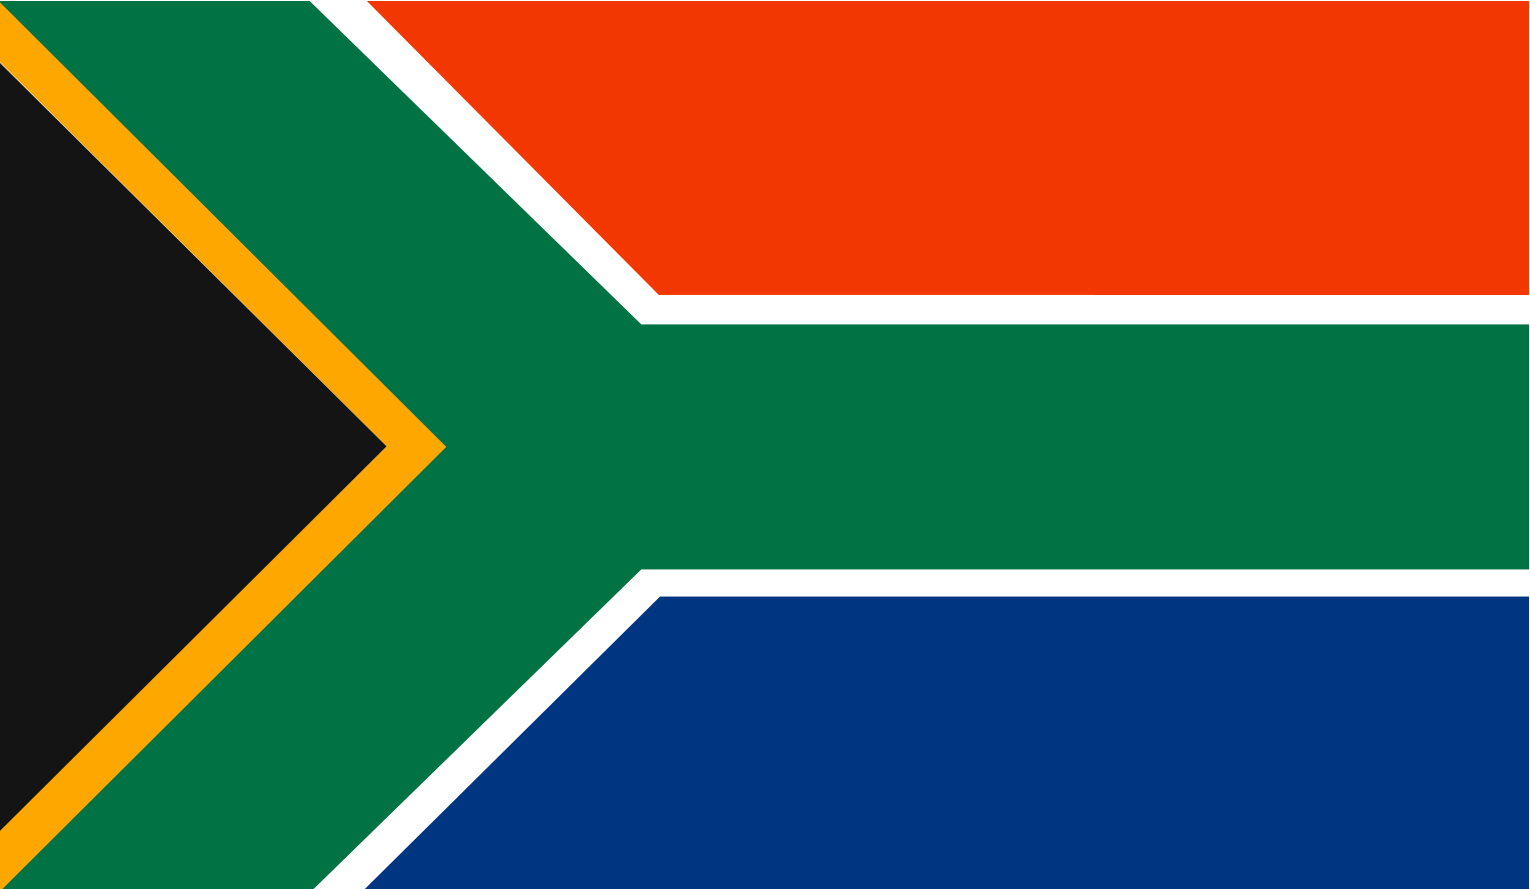 South Africa Mission Trip: South Africa's Flag